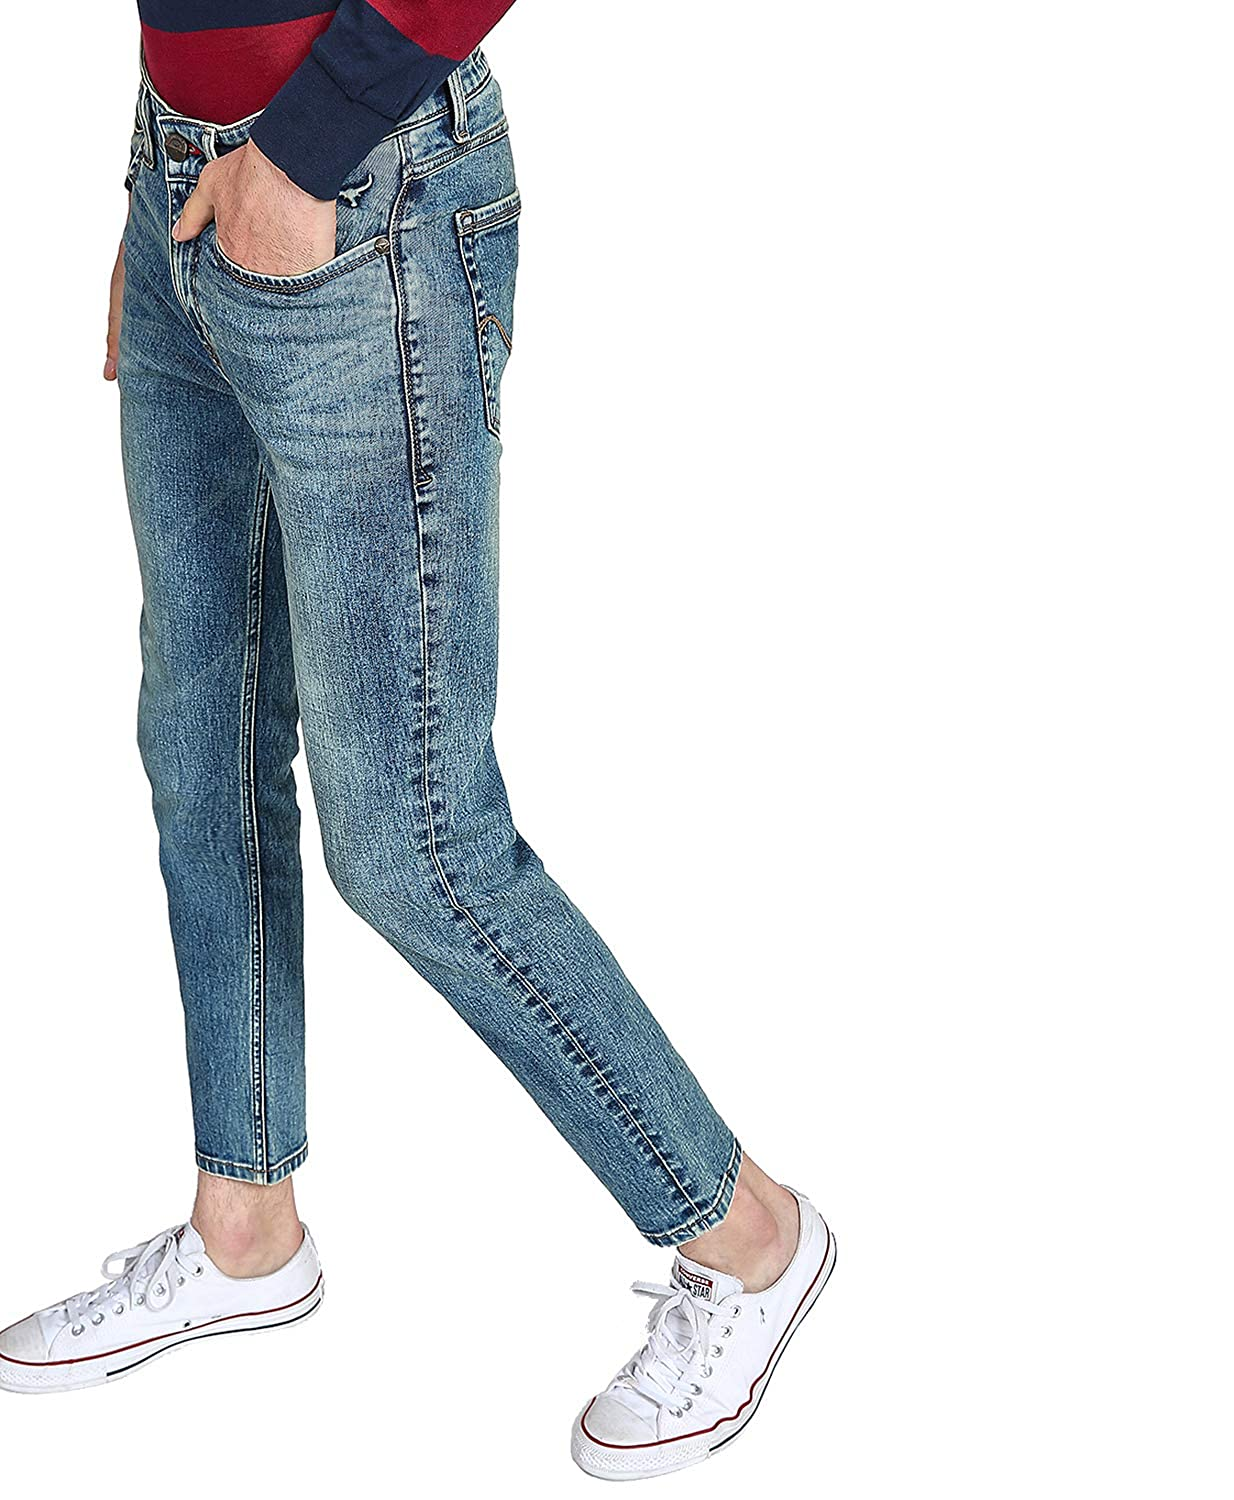 FBB Dyed Low-Rise Tapered Fit Jeans